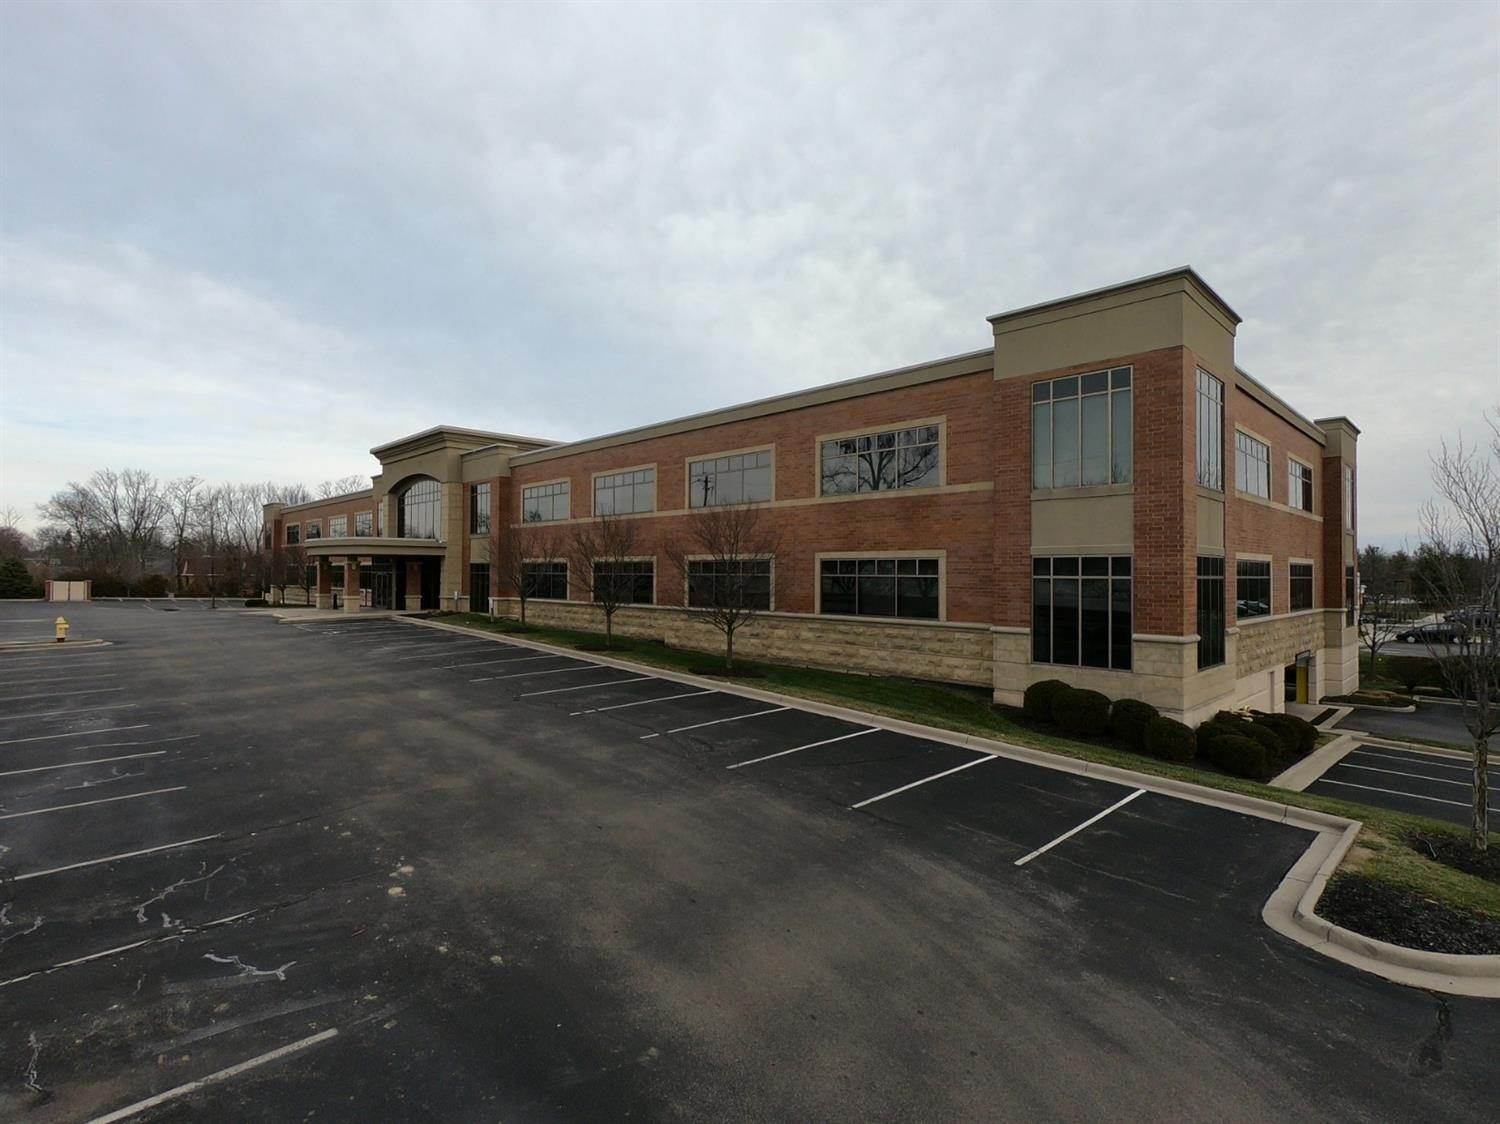 Oficinas en 8250 Kenwood Crossing Road Sycamore Twp, Ohio 45236 Estados Unidos